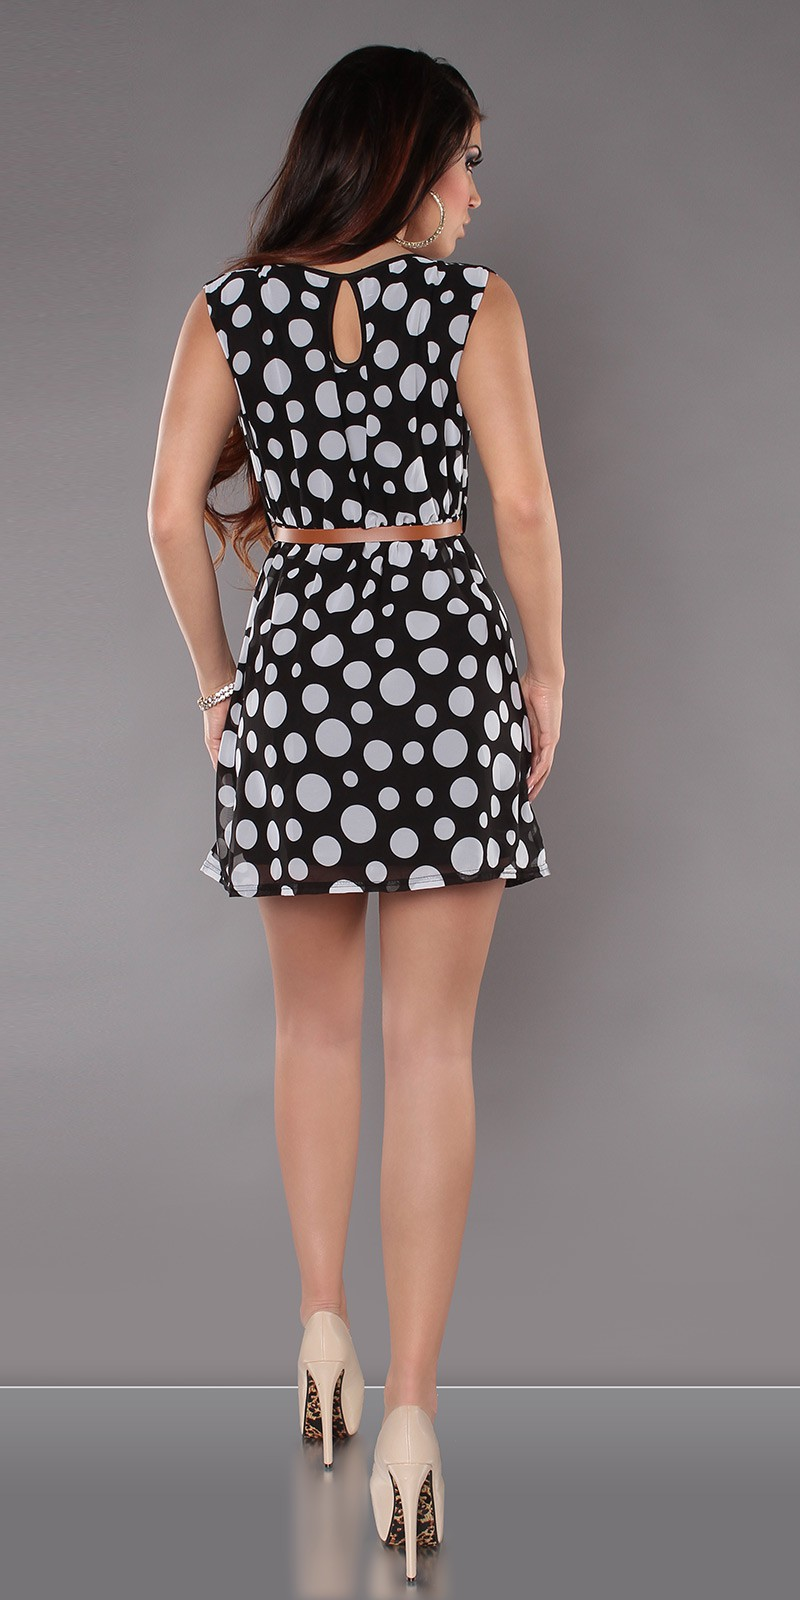 Black Sleeveless Belted Polka Dot Short Dress